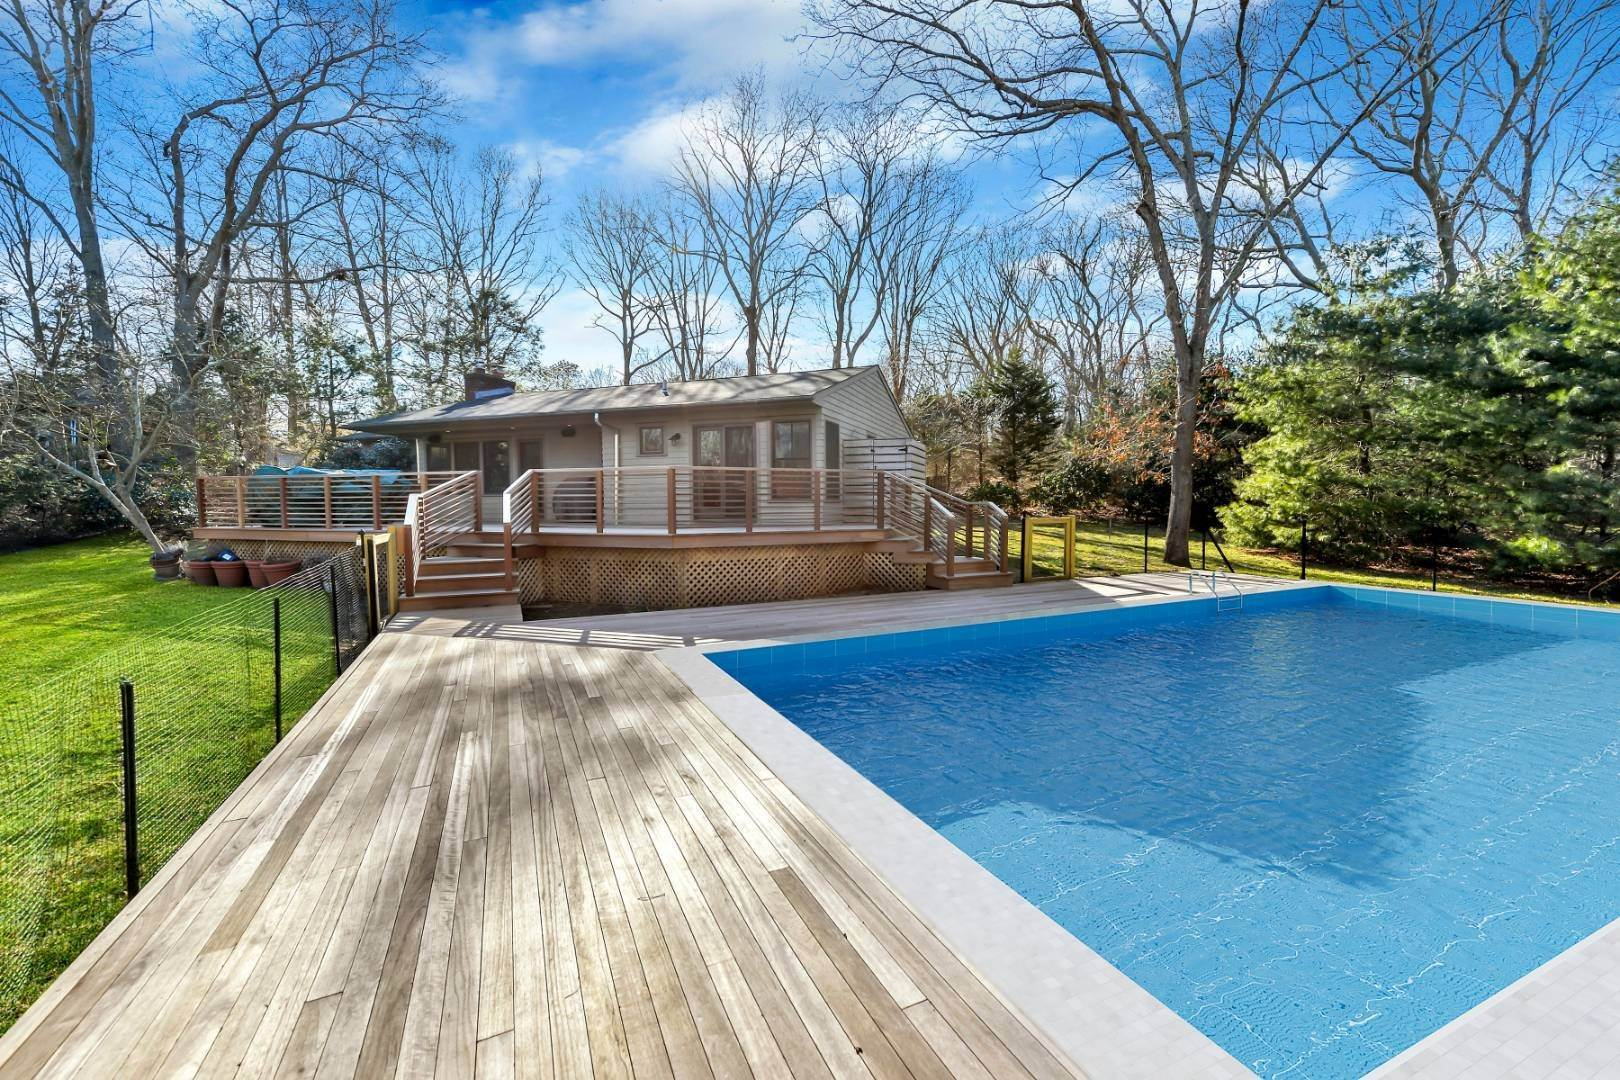 Single Family Home at Private And Chic 3 Bedroom With Brand New Gunite Pool! East Hampton, NY 11937